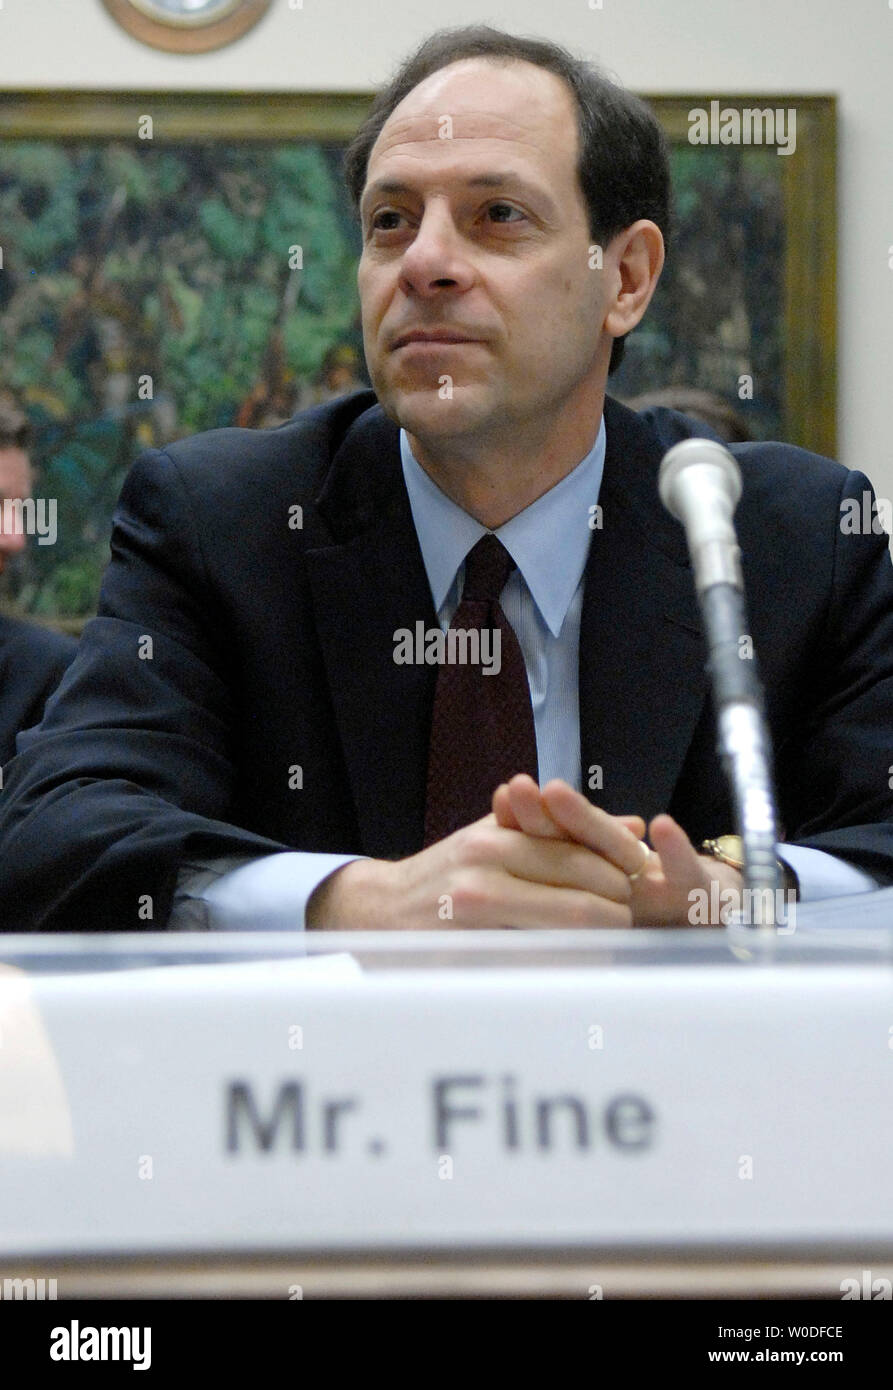 Inspector General of the Department of Justice Glenn Fine waits to